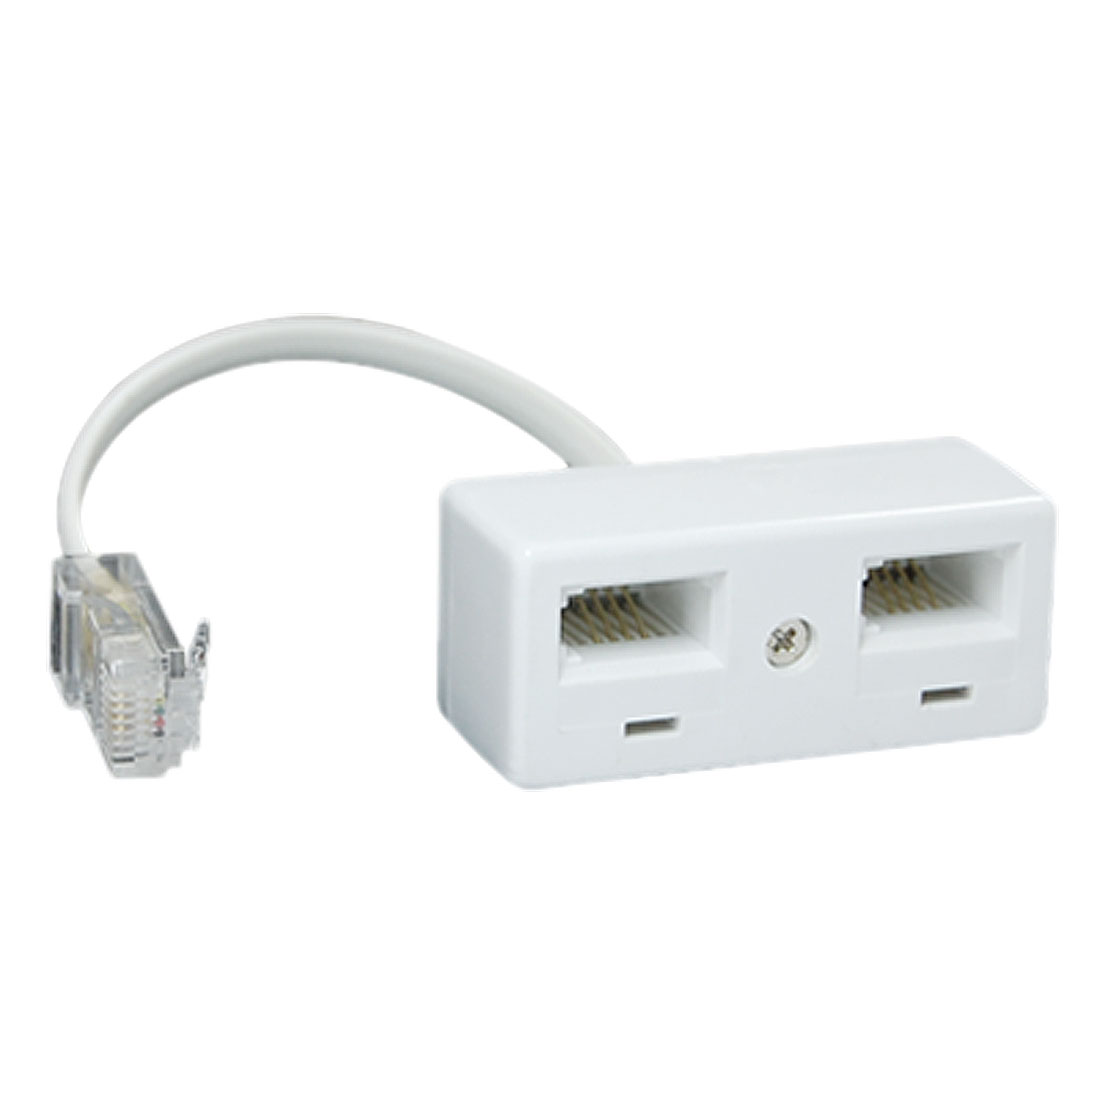 RJ45 Plug to Dual BT Socket Secondary Telephone Adapter